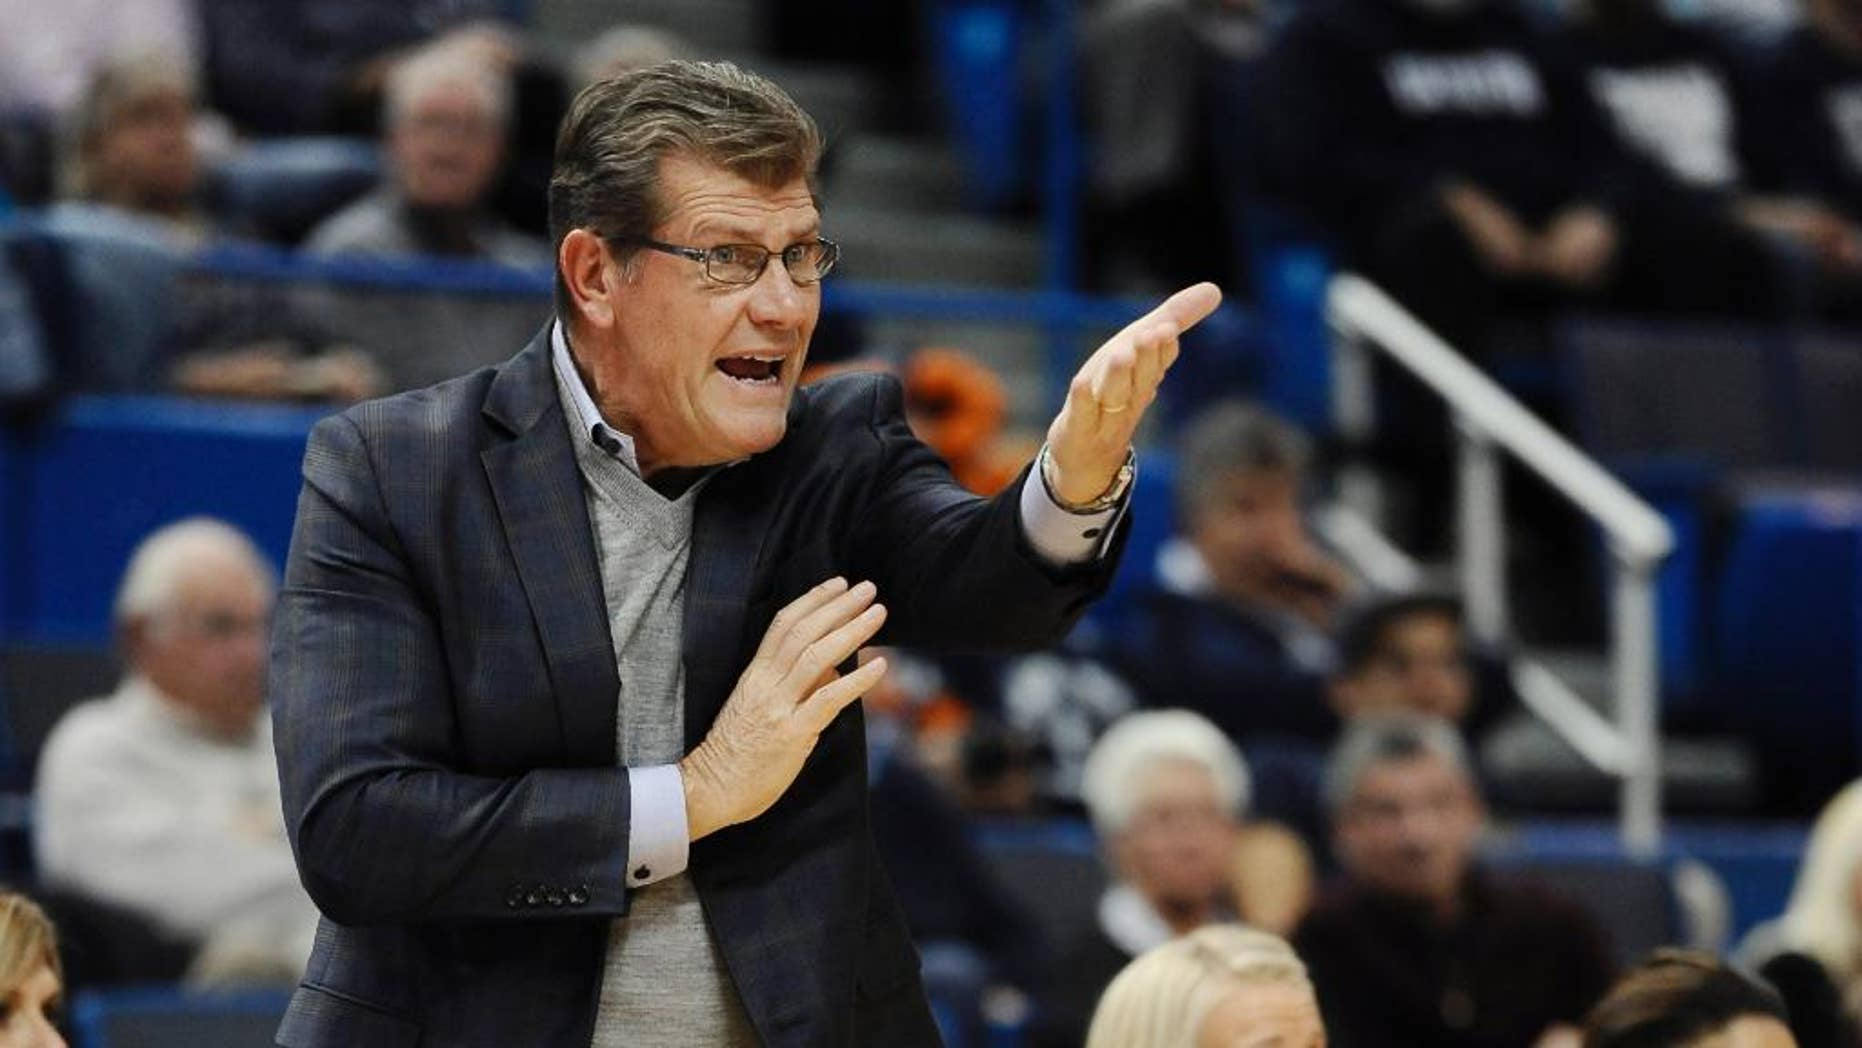 THIS CORRECTS THE NAME OF THE SCHOOL TO POST, NOT C.W. POST AS ORIGINALLY SAENT - Connecticut Geno Auriemma gestures to his team during the first half of an NCAA college basketball game against Post, Sunday, Nov. 9, 2014, in Hartford, Conn. (AP Photo/Jessica Hill)